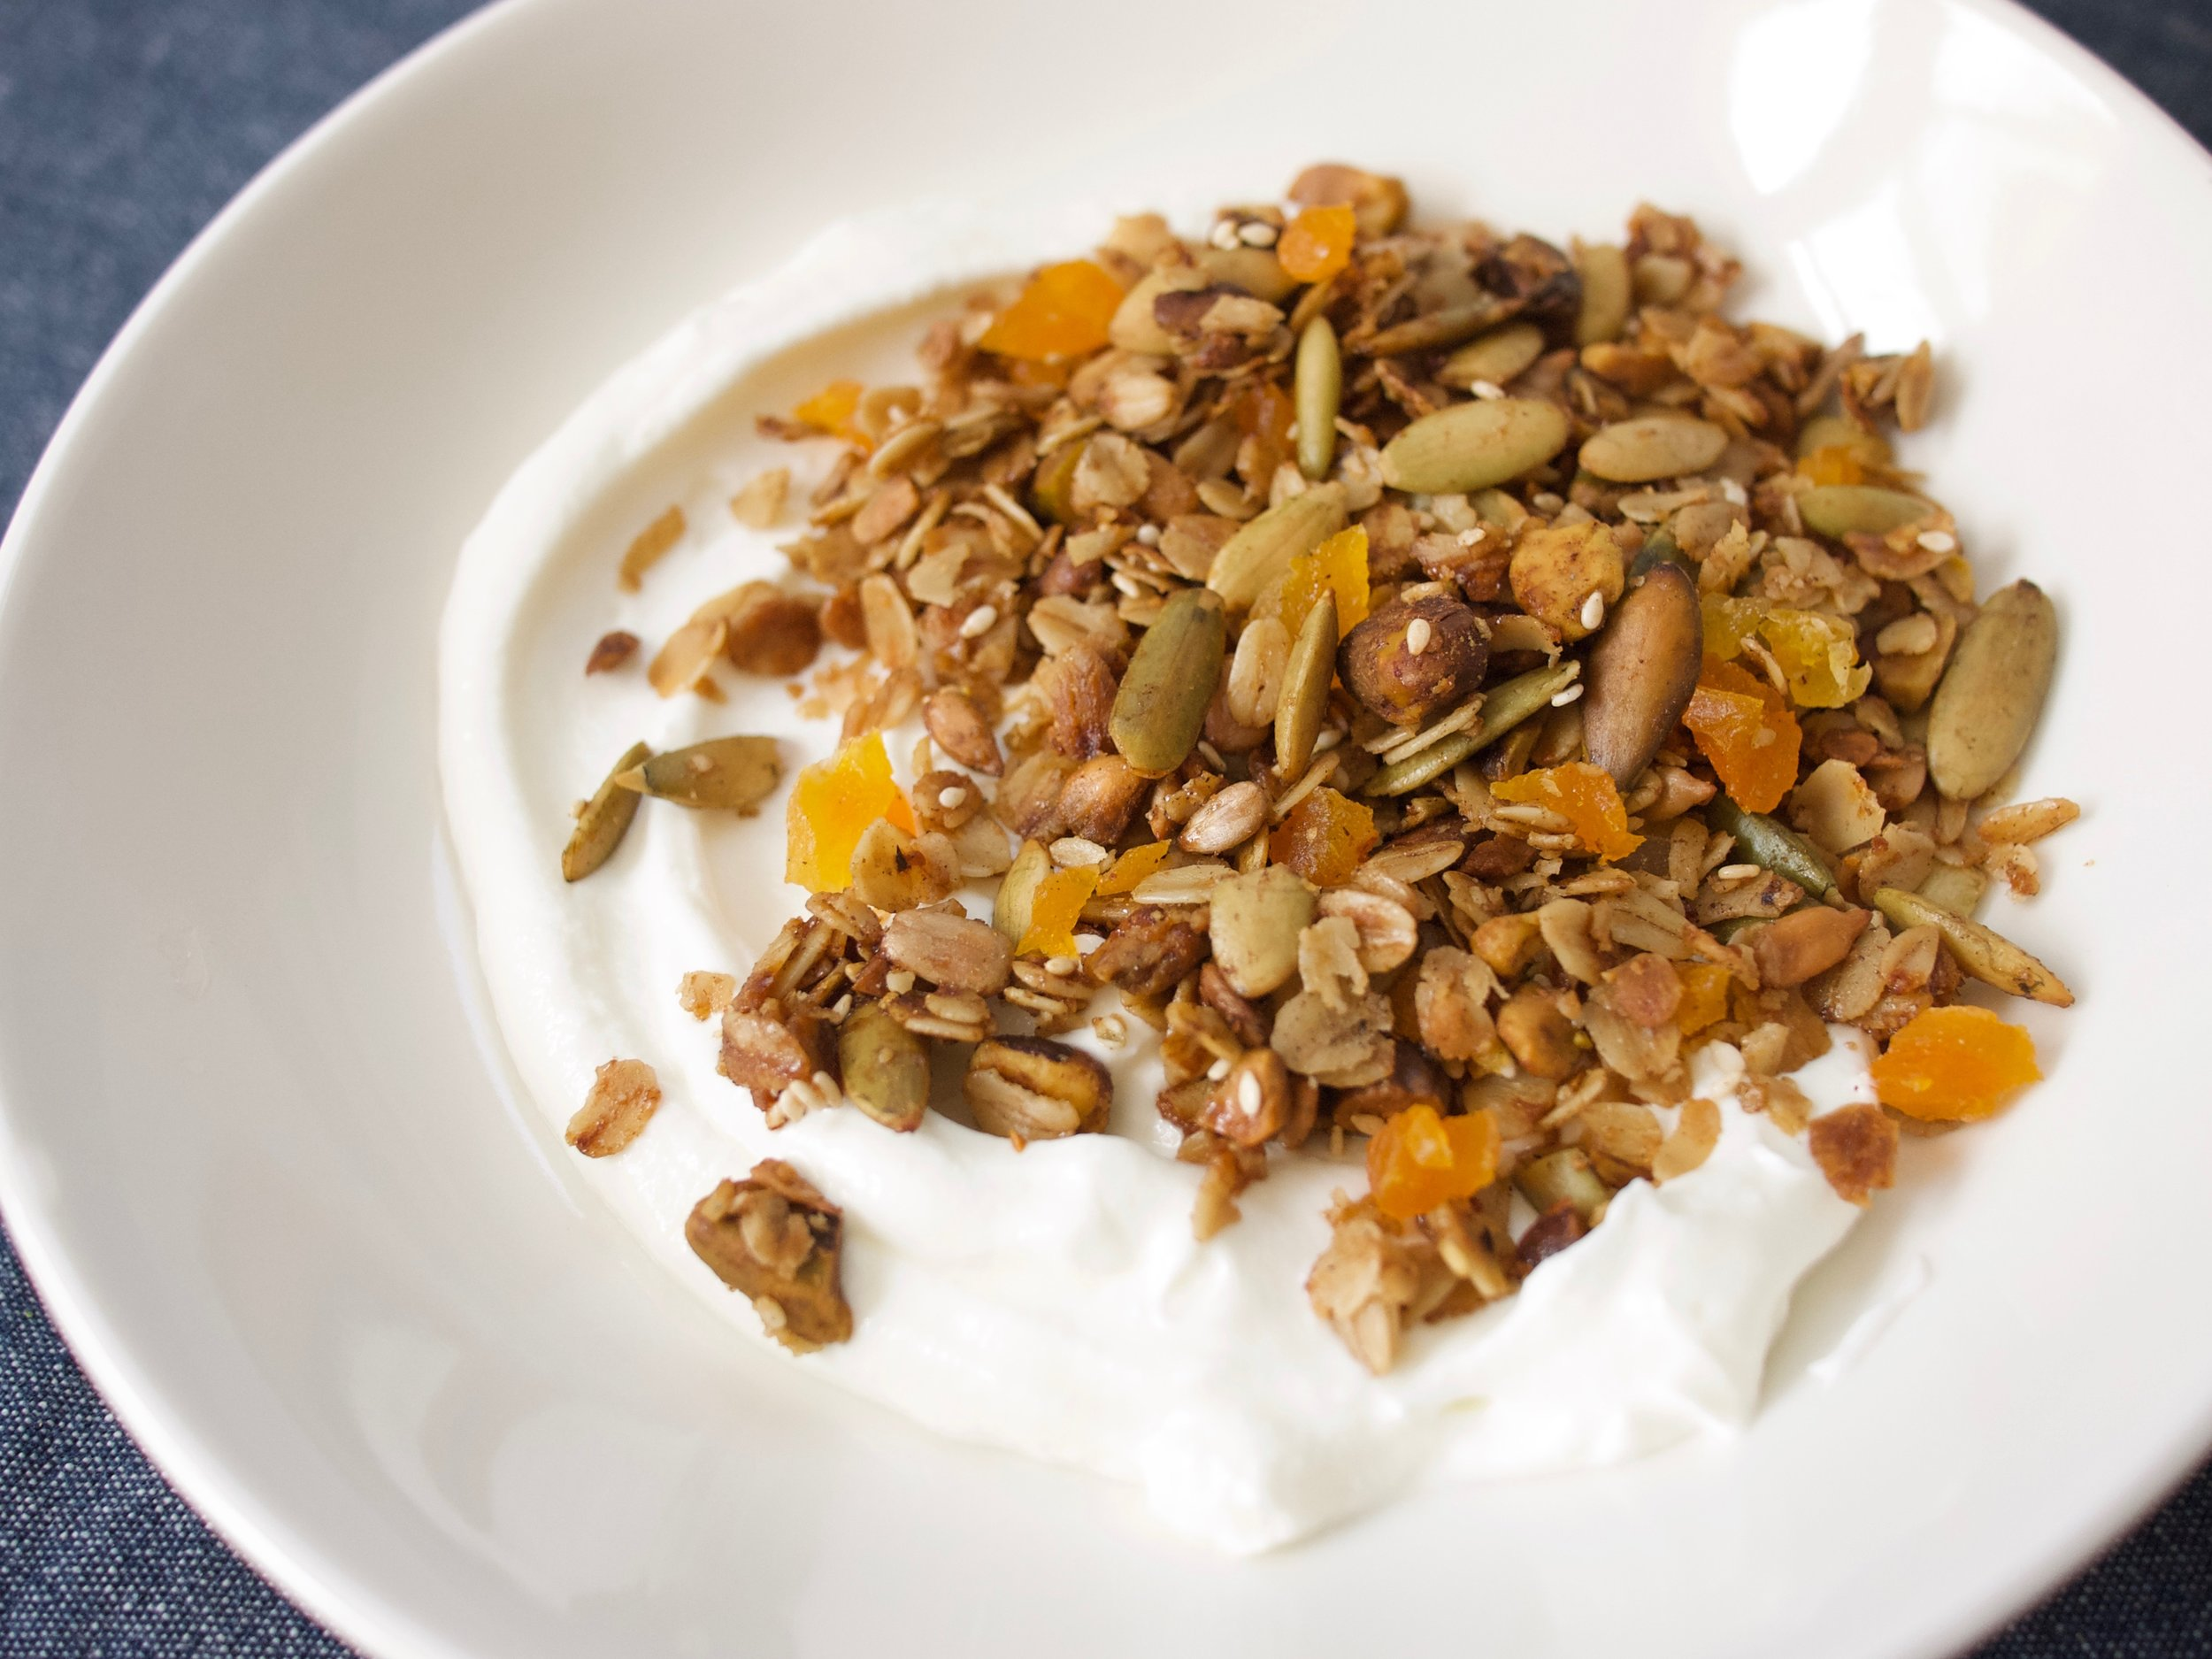 Cardamom Granola with Apricot and Pistachio